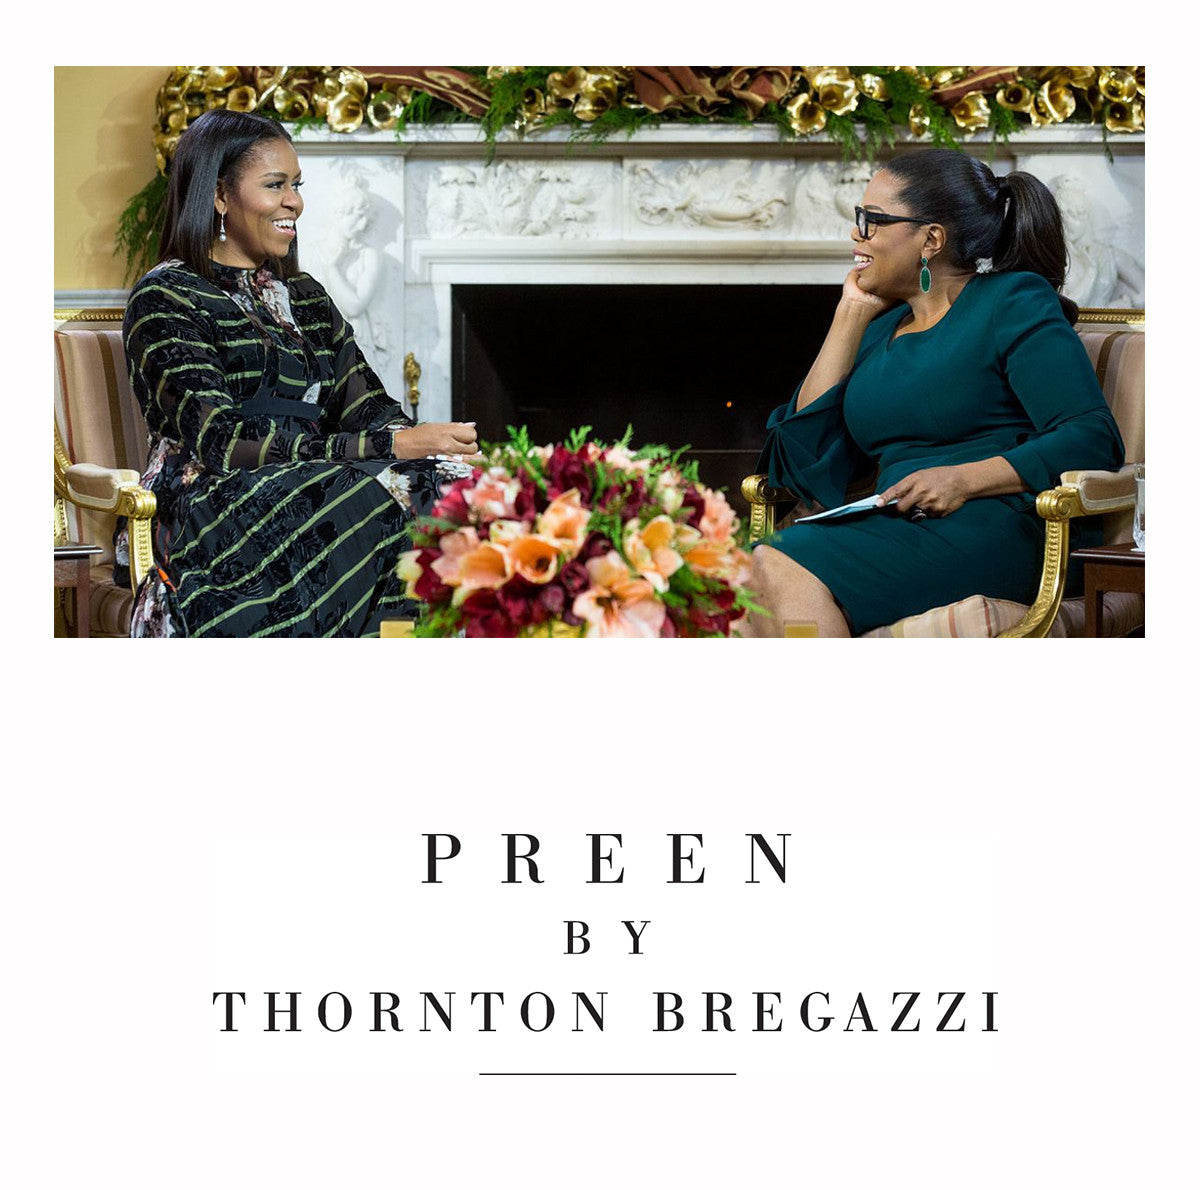 Michelle Obama in Preen by Thornton Bregazzi